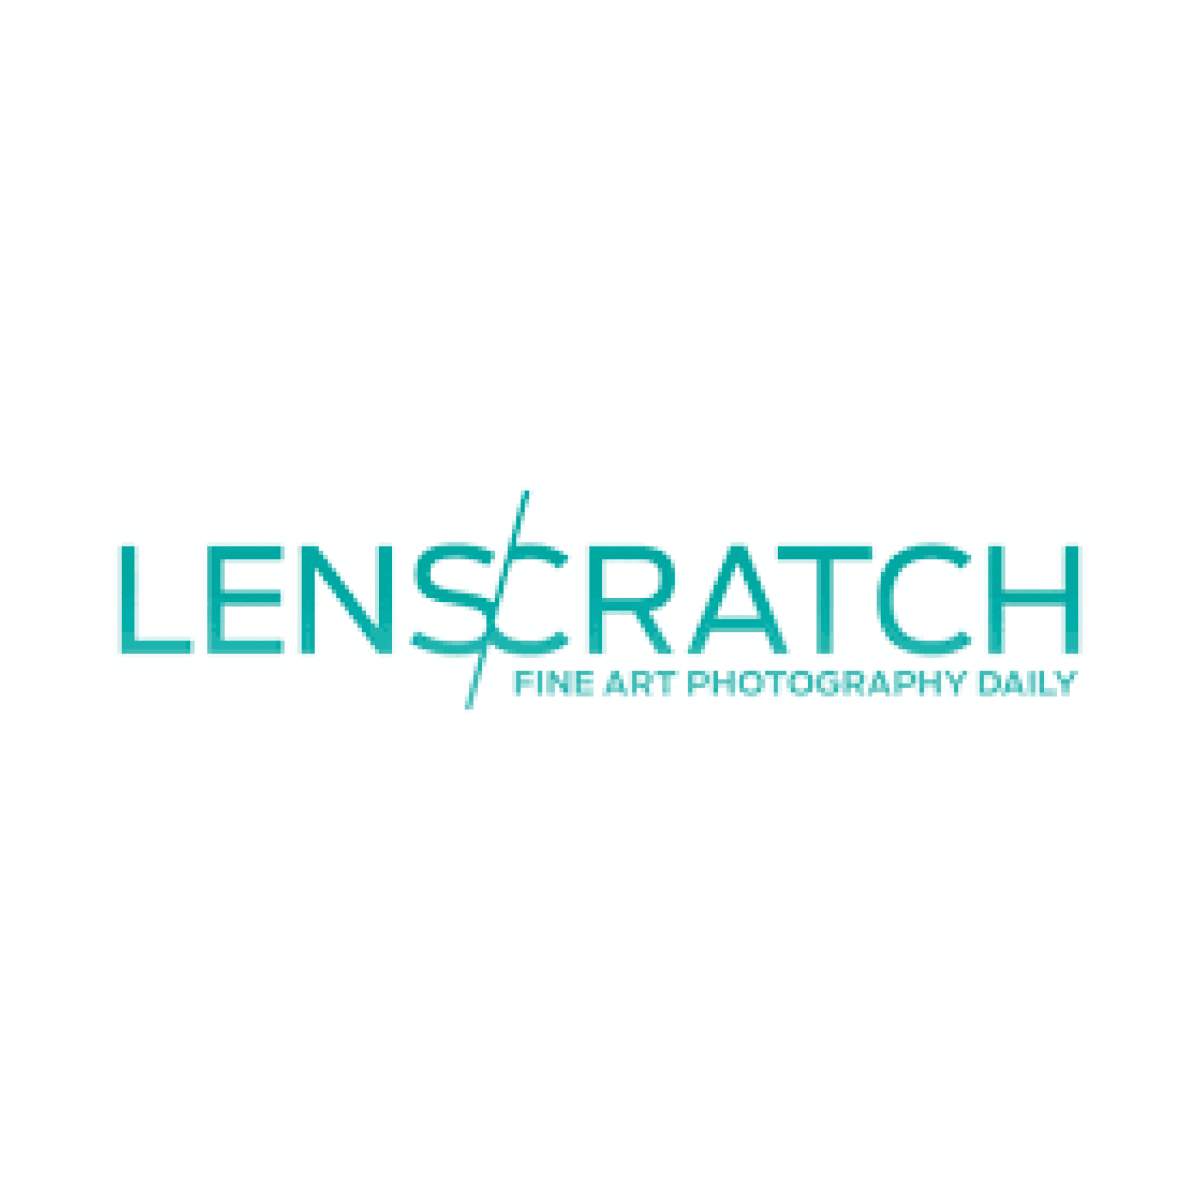 PRESS: Lenscratch